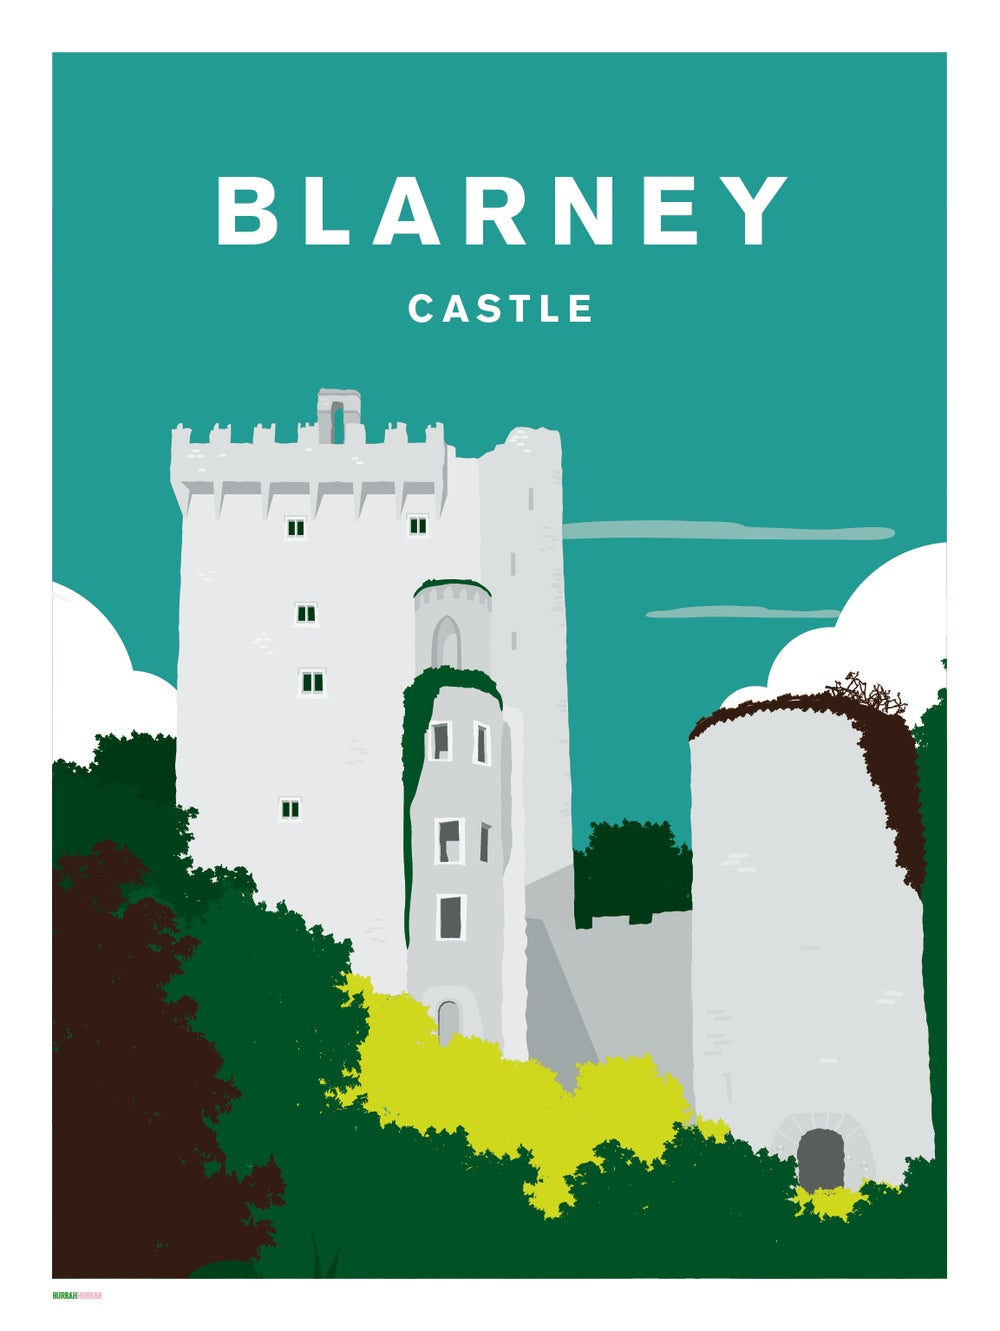 Image of Blarney Castle